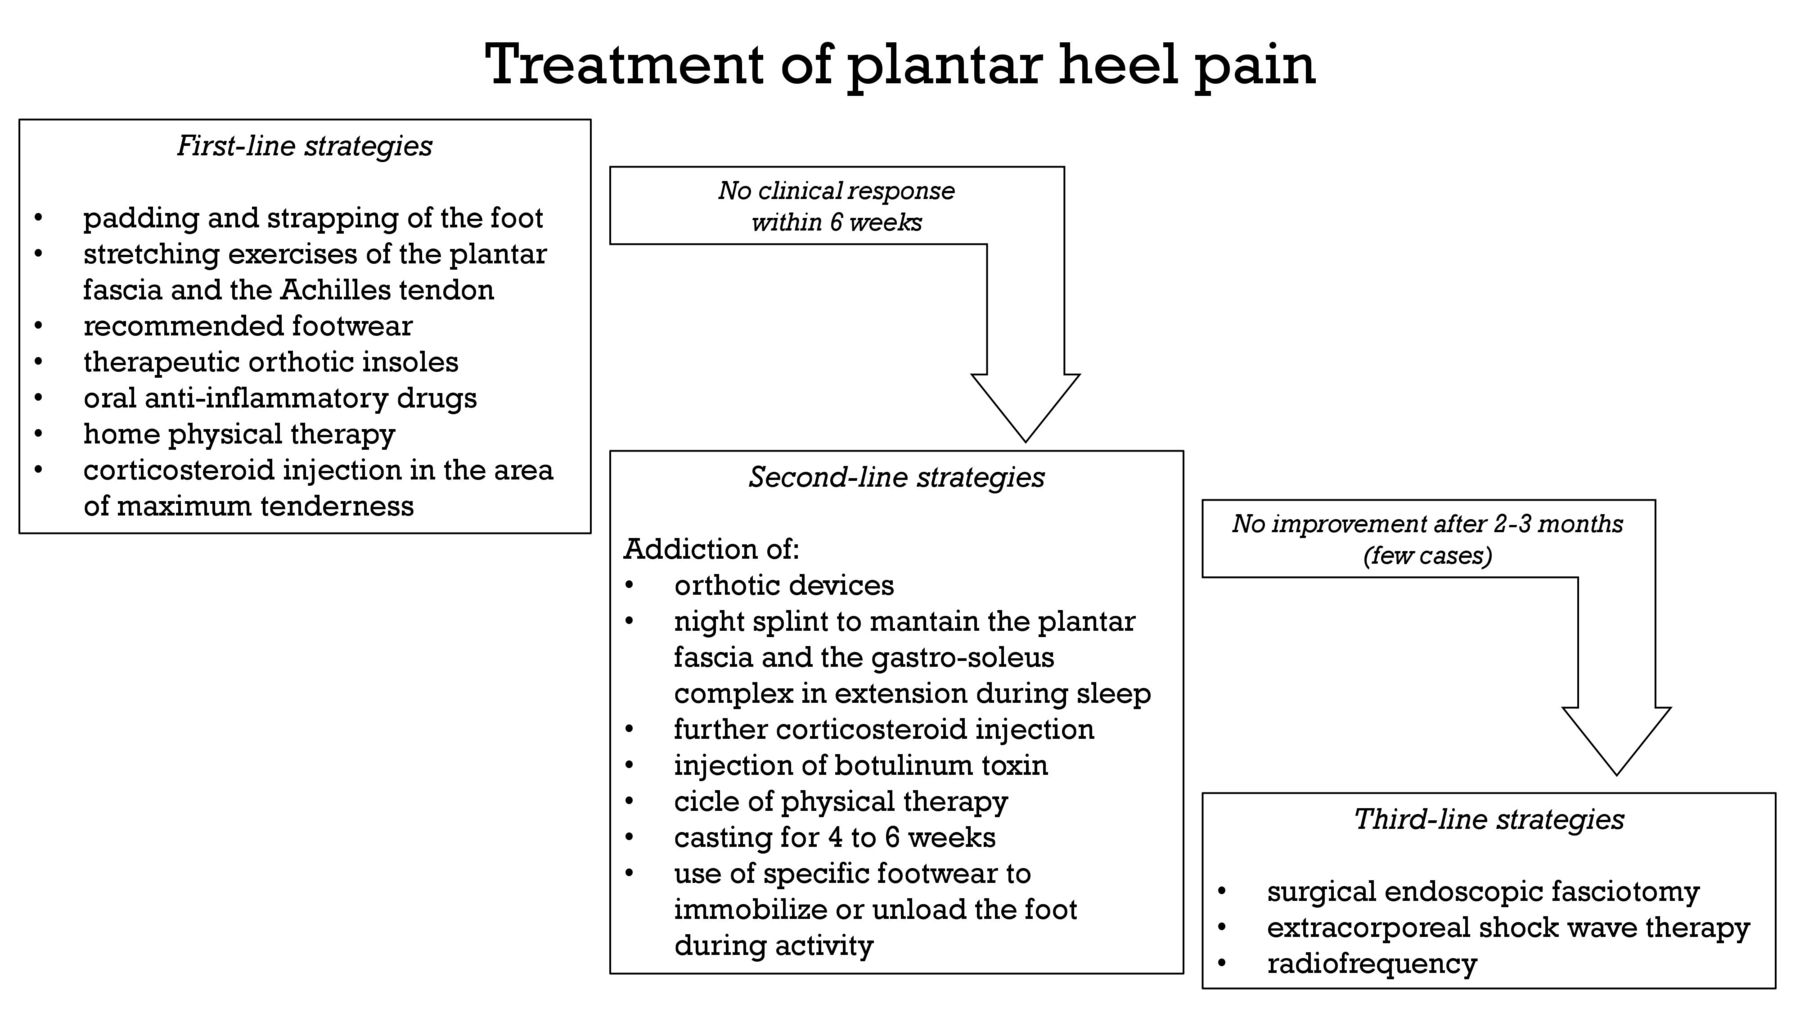 Inferior heel pain in soccer players: a retrospective study